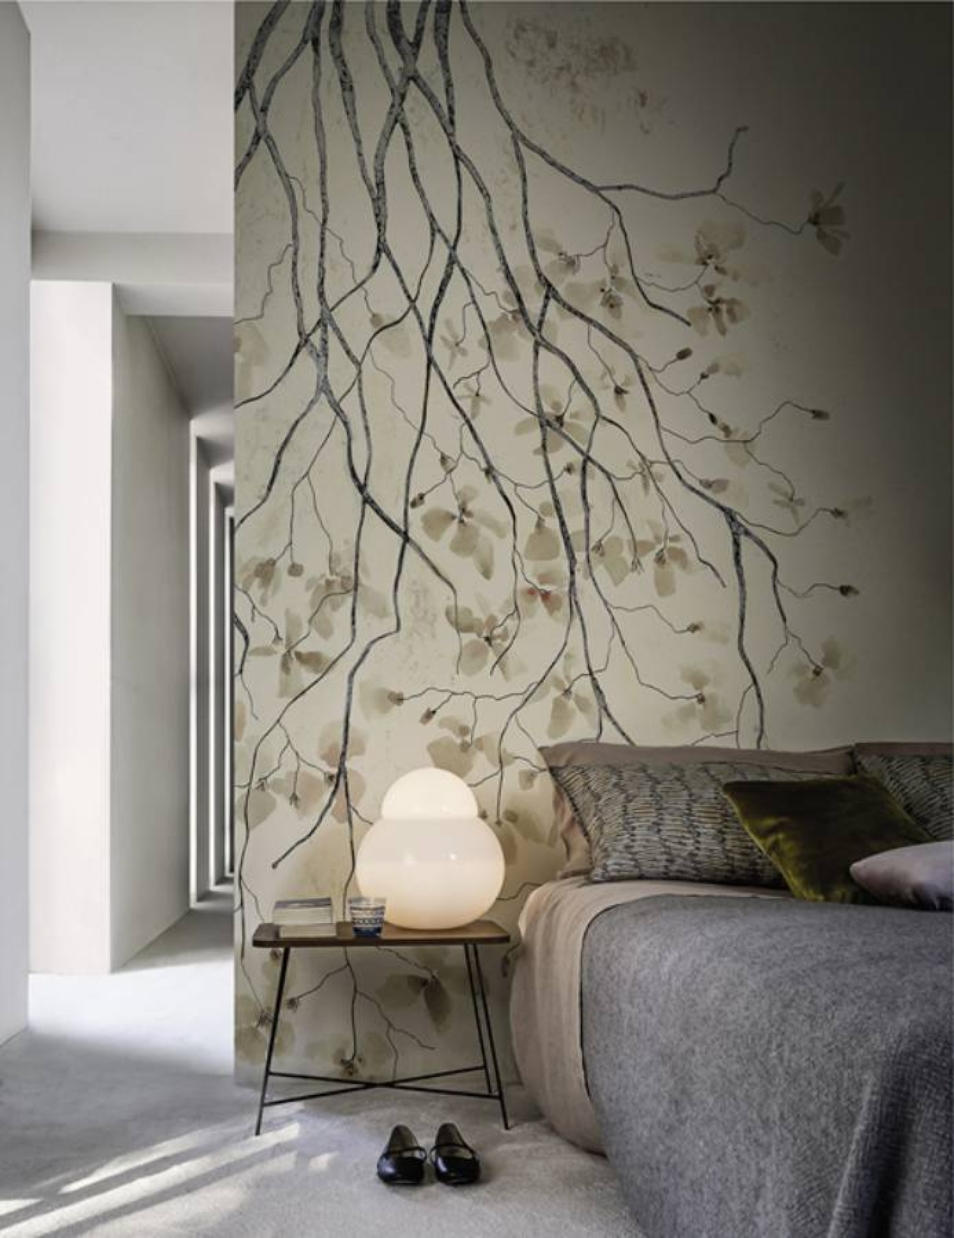 cherry tree blossom wallpaper in a bedroom